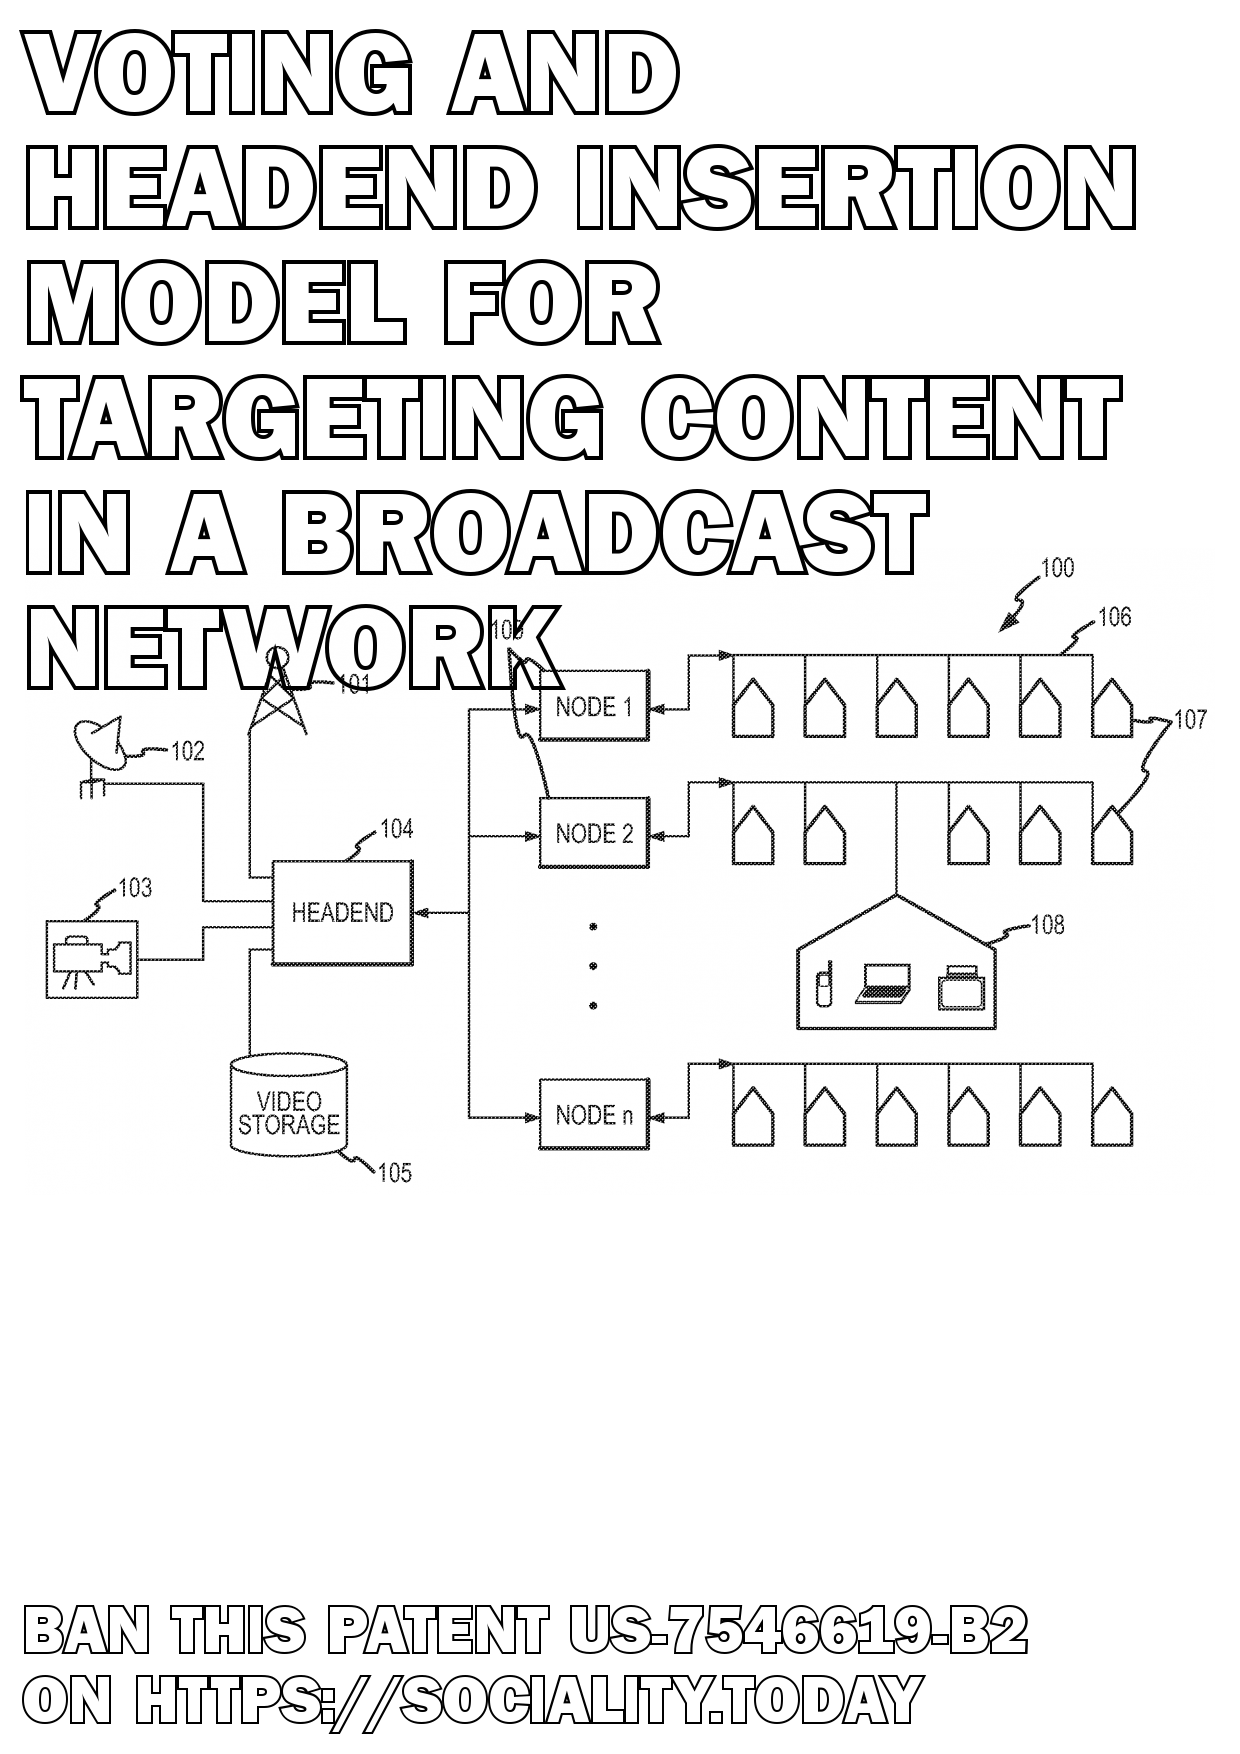 Voting and headend insertion model for targeting content in a broadcast network  - US-7546619-B2